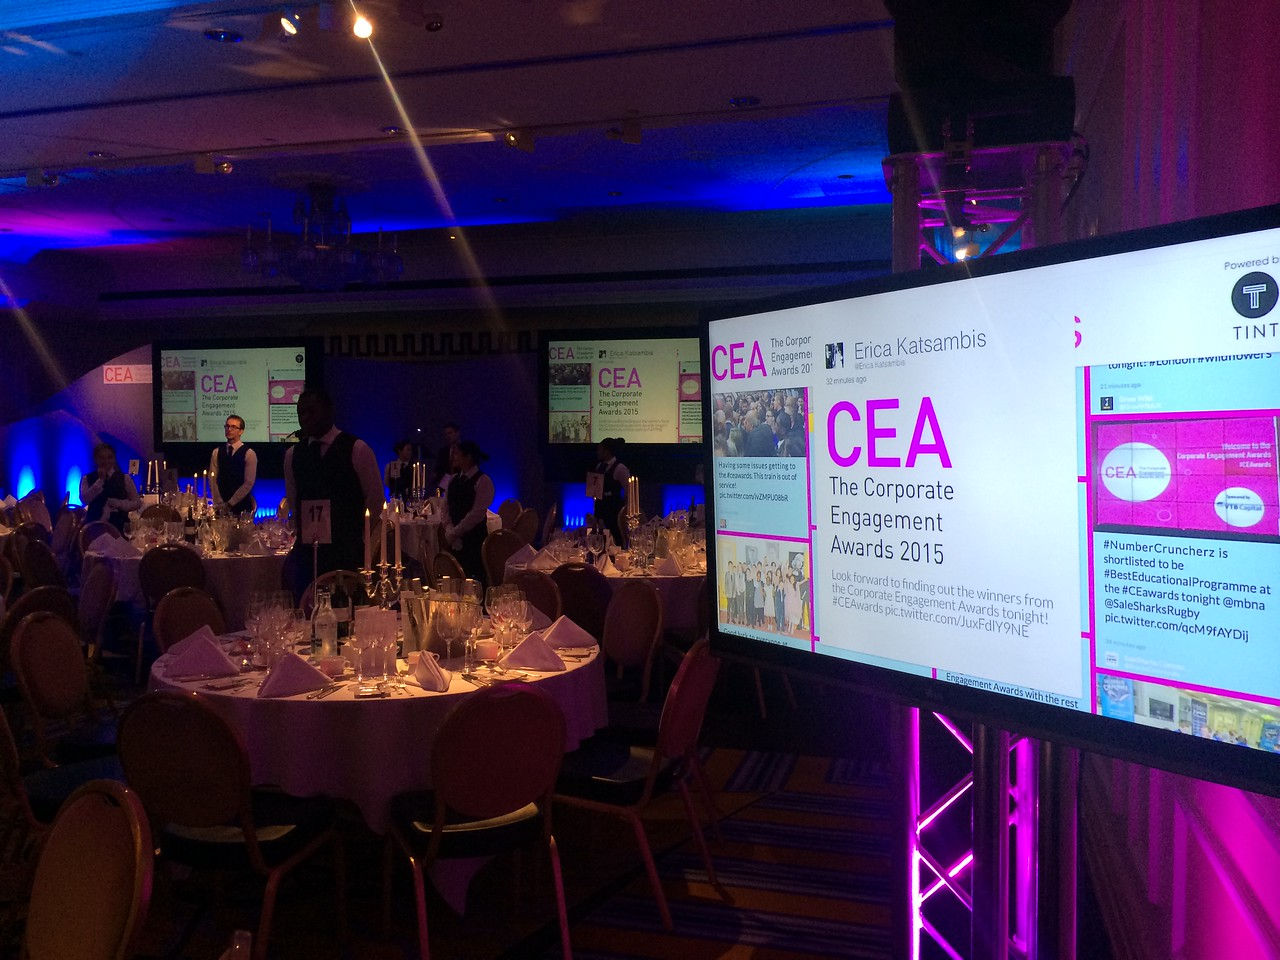 CEA Corporate Engagement Awards